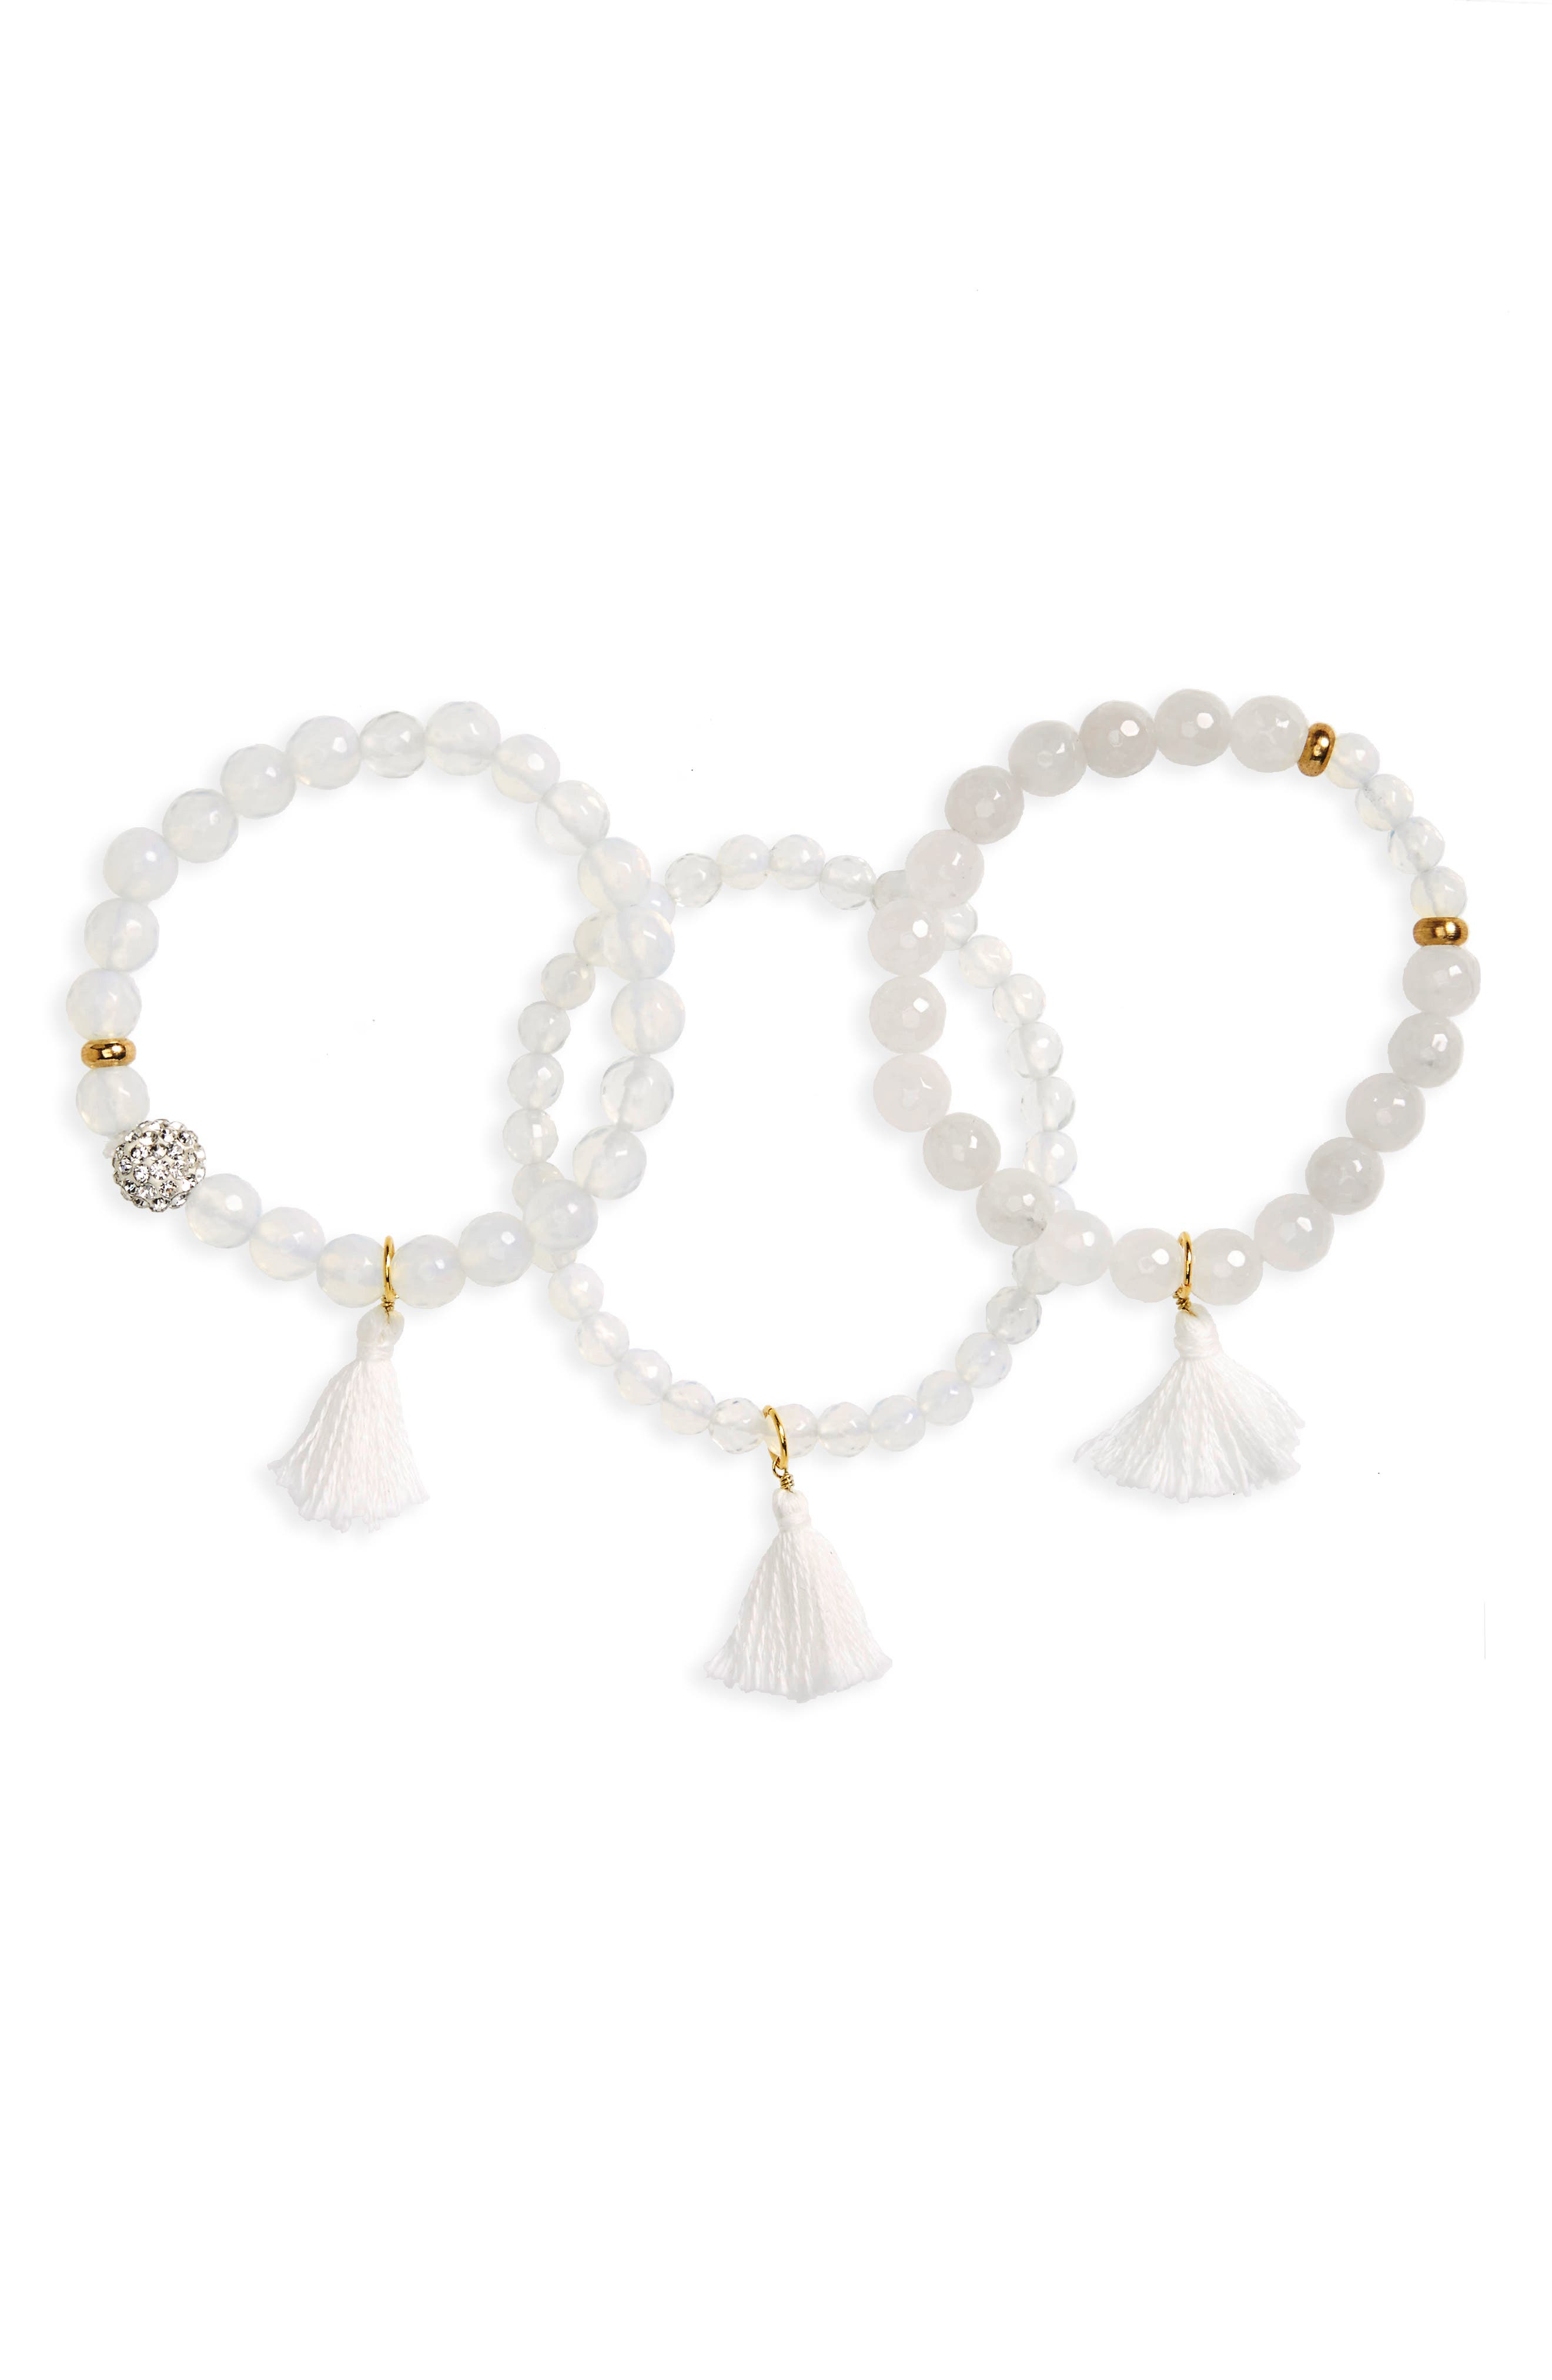 Set of 3 Beaded Stretch Bracelets,                             Main thumbnail 1, color,                             White